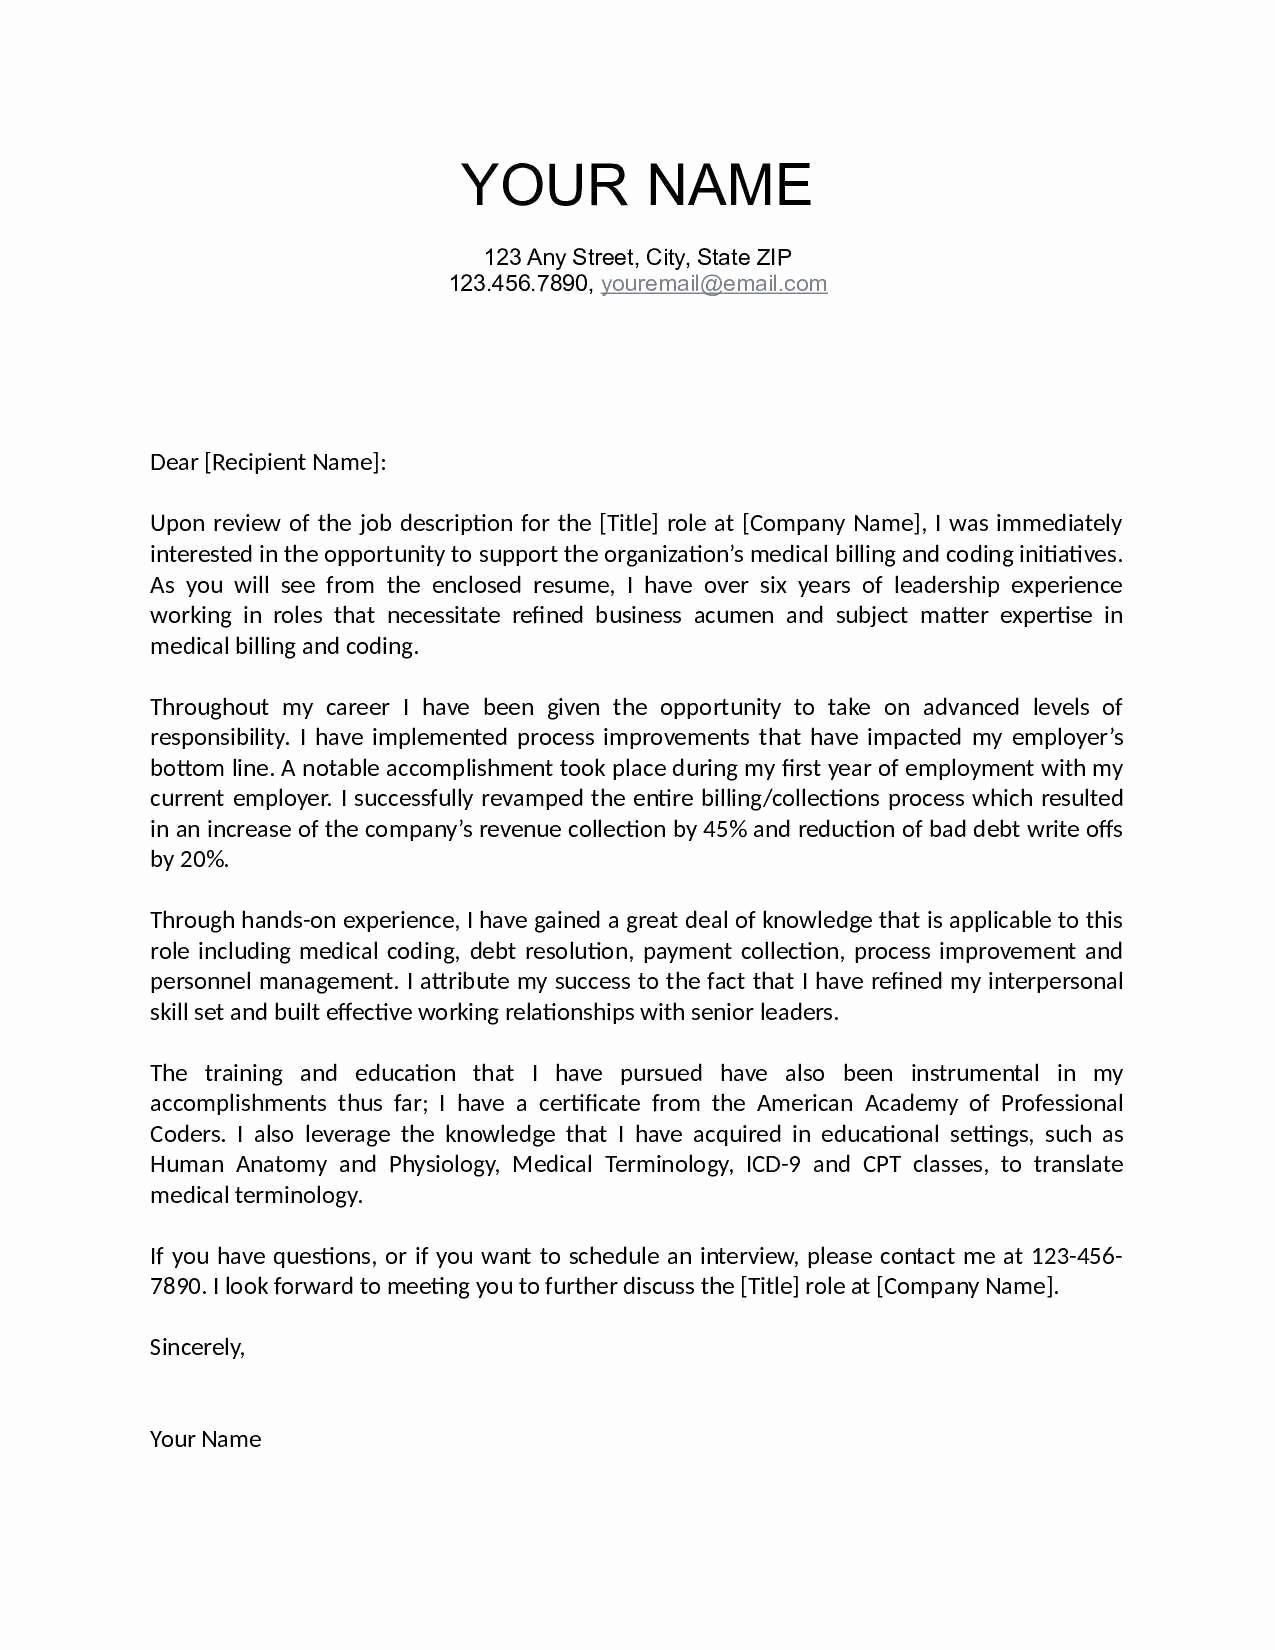 Successful Cover Letter Template - Writing A Good Cover Letter Beautiful Cover Letter Overseas Job New